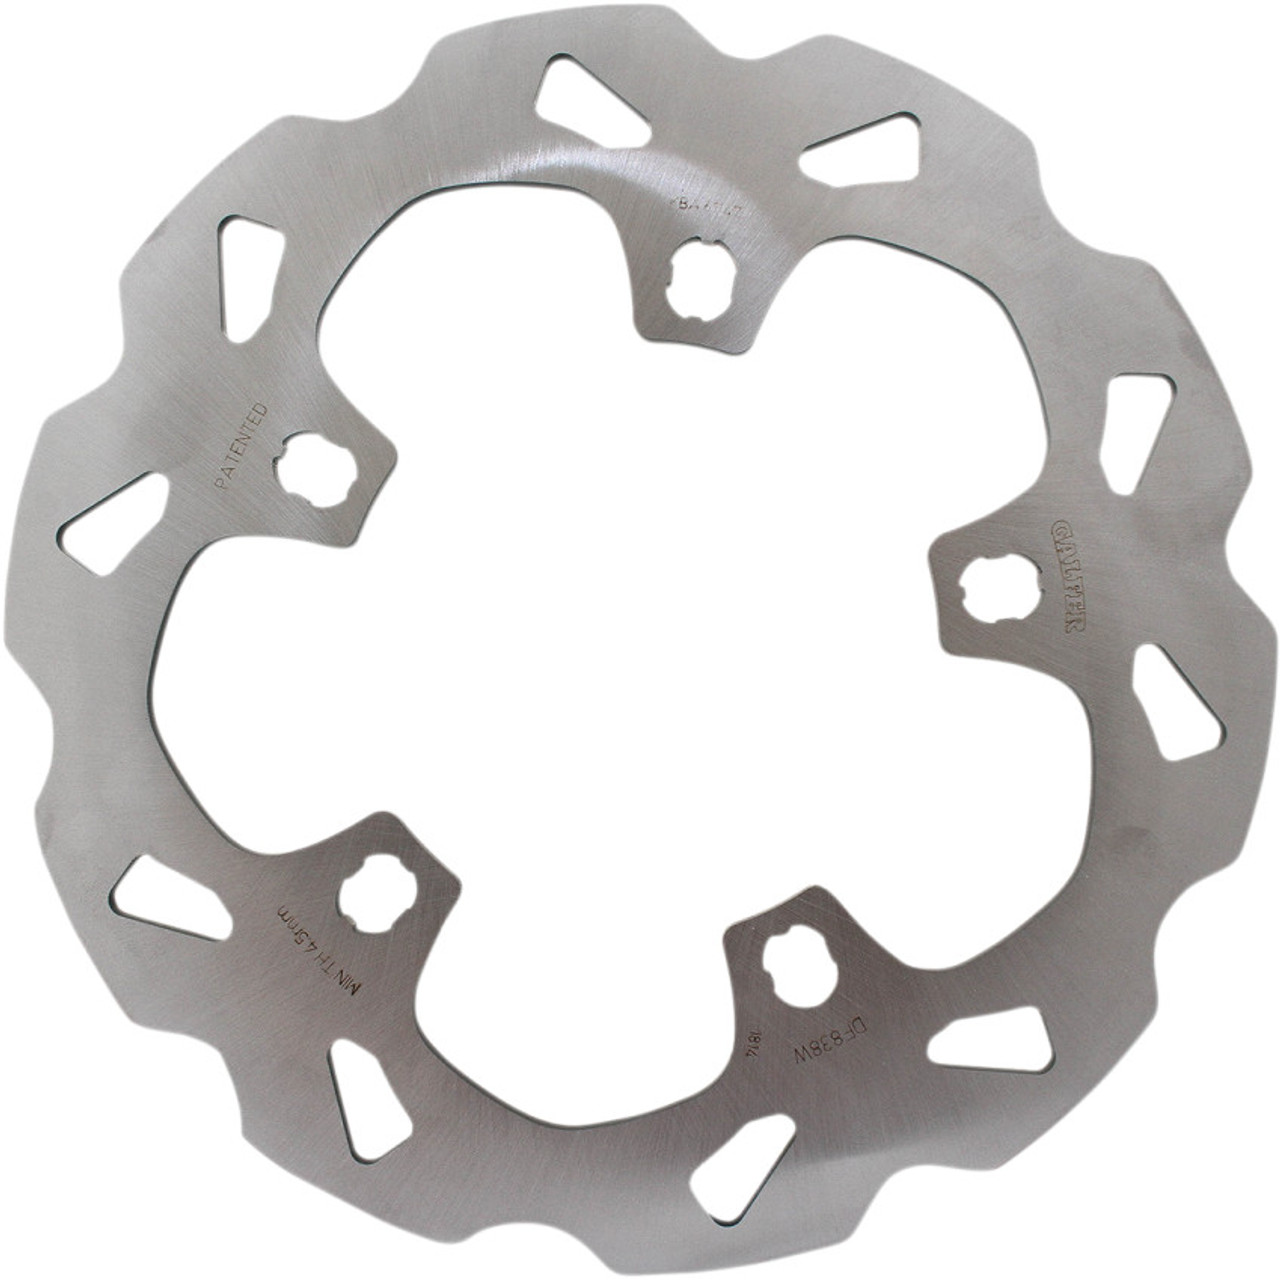 Galfer DF606W Front Wave Rotors for Offroad